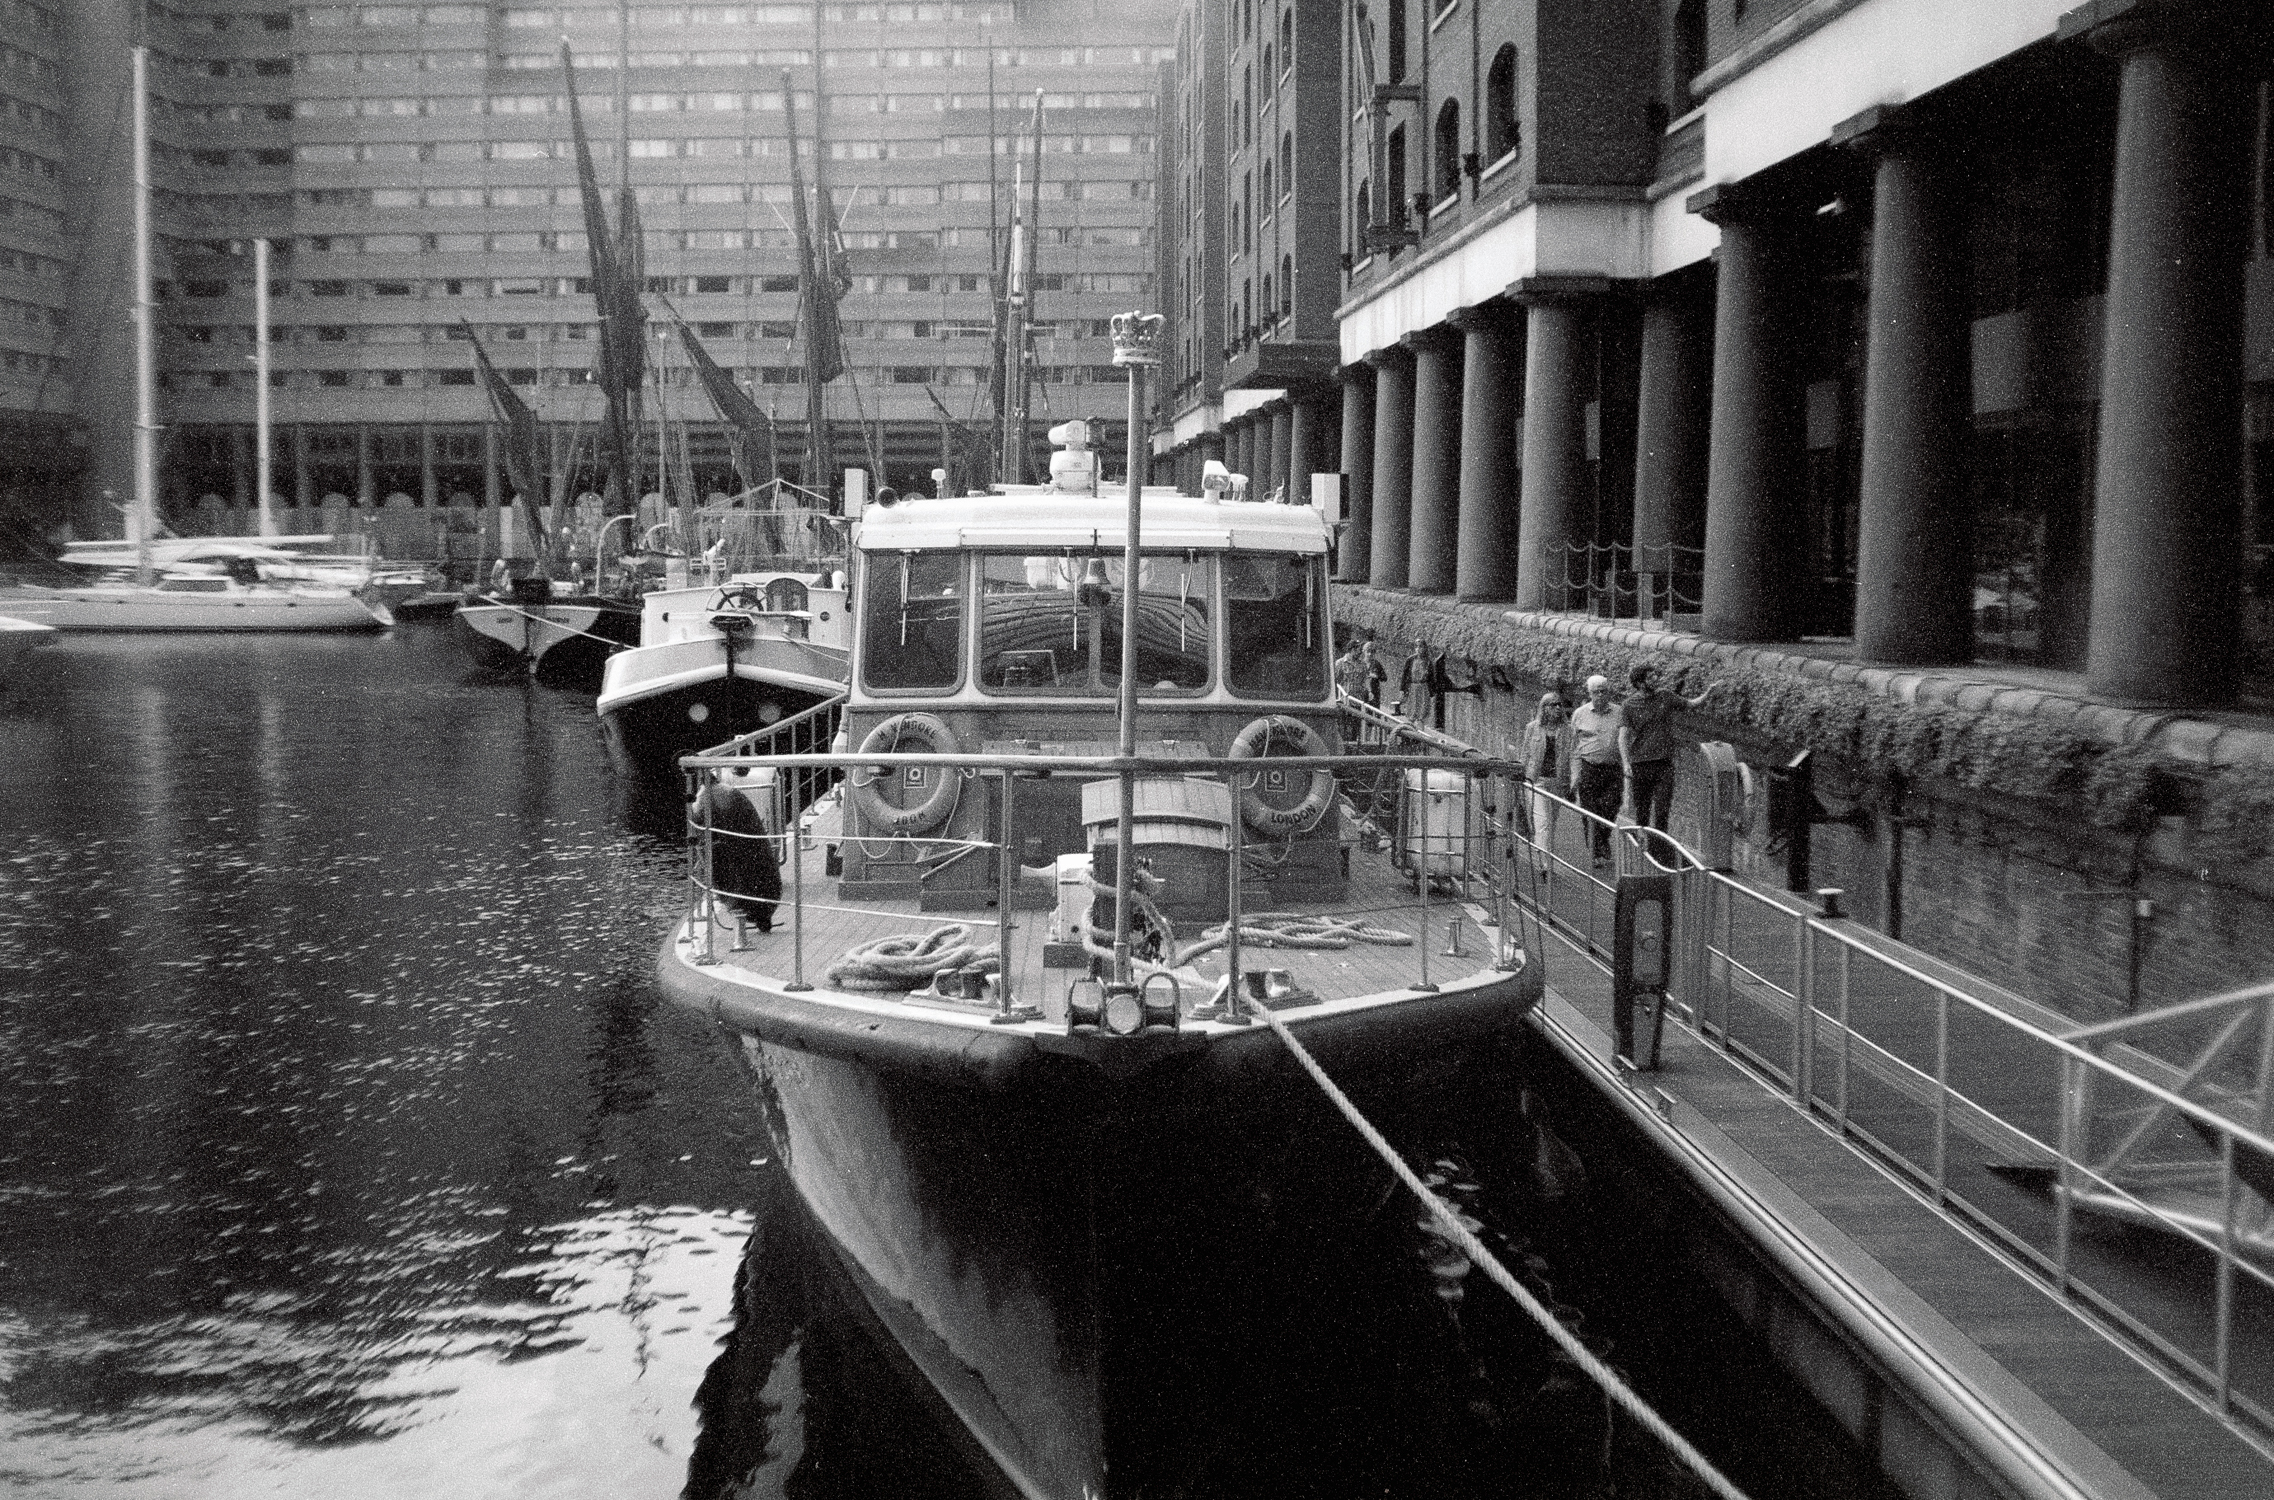 Boat in Docklands (Pic: Stephen Dowling)